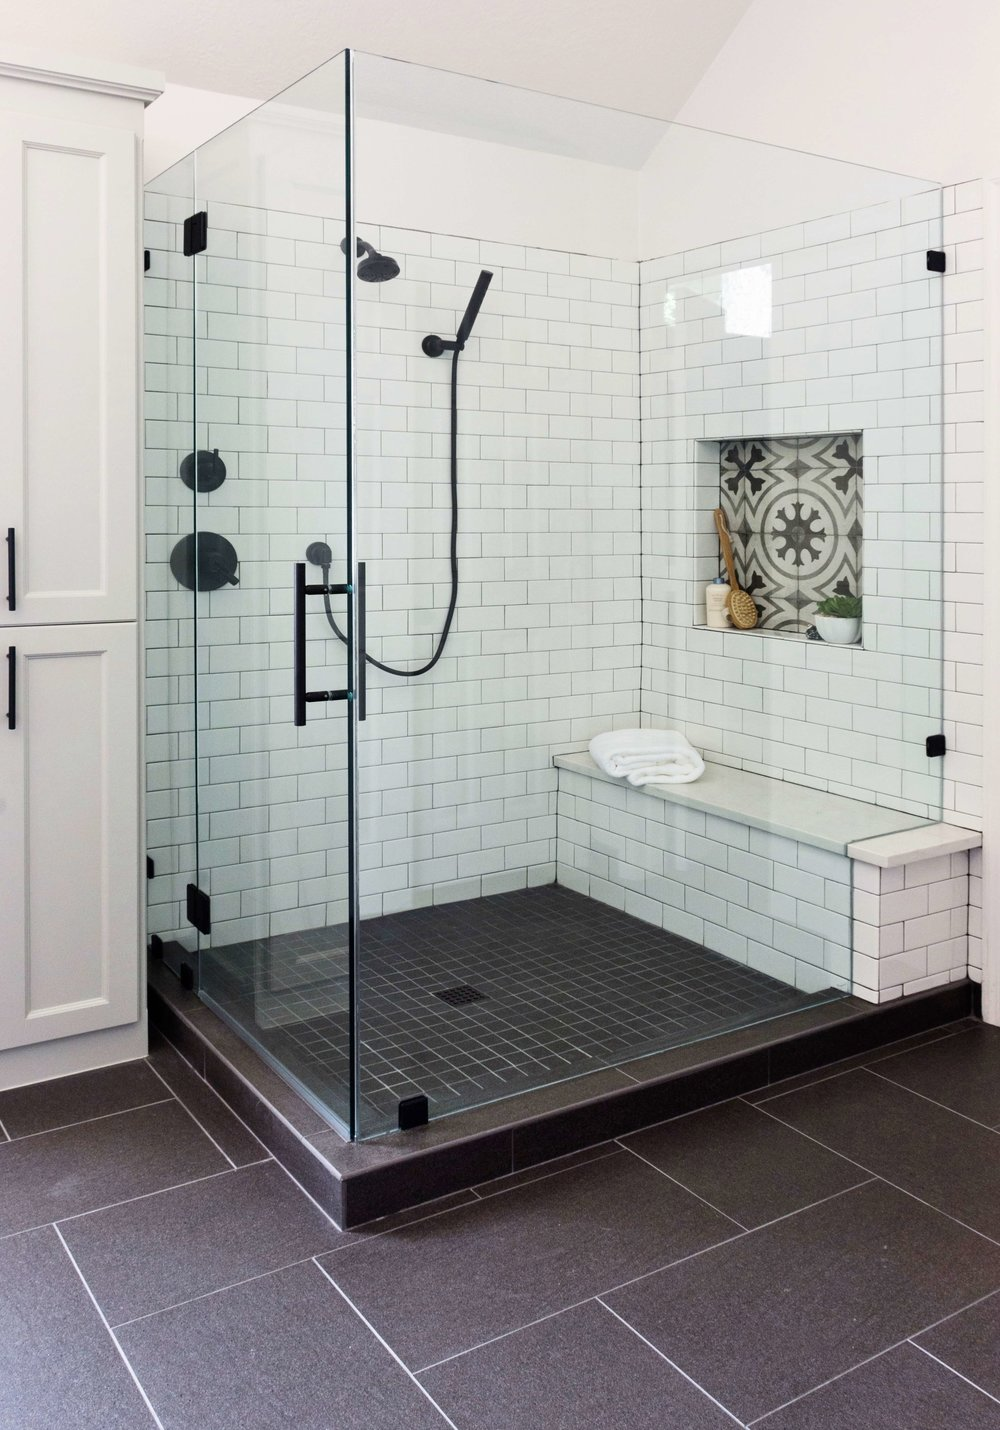 BEFORE AND AFTER - Master bathroom remodel, new shower with cement look tile shampoo niche, white subway tile with dark grout, bench and black plumbing fixtures  | Carla Aston, Designer | Charles Behrend, Photographer #cementtile #largeshower #subwaytile #bathroomremodel